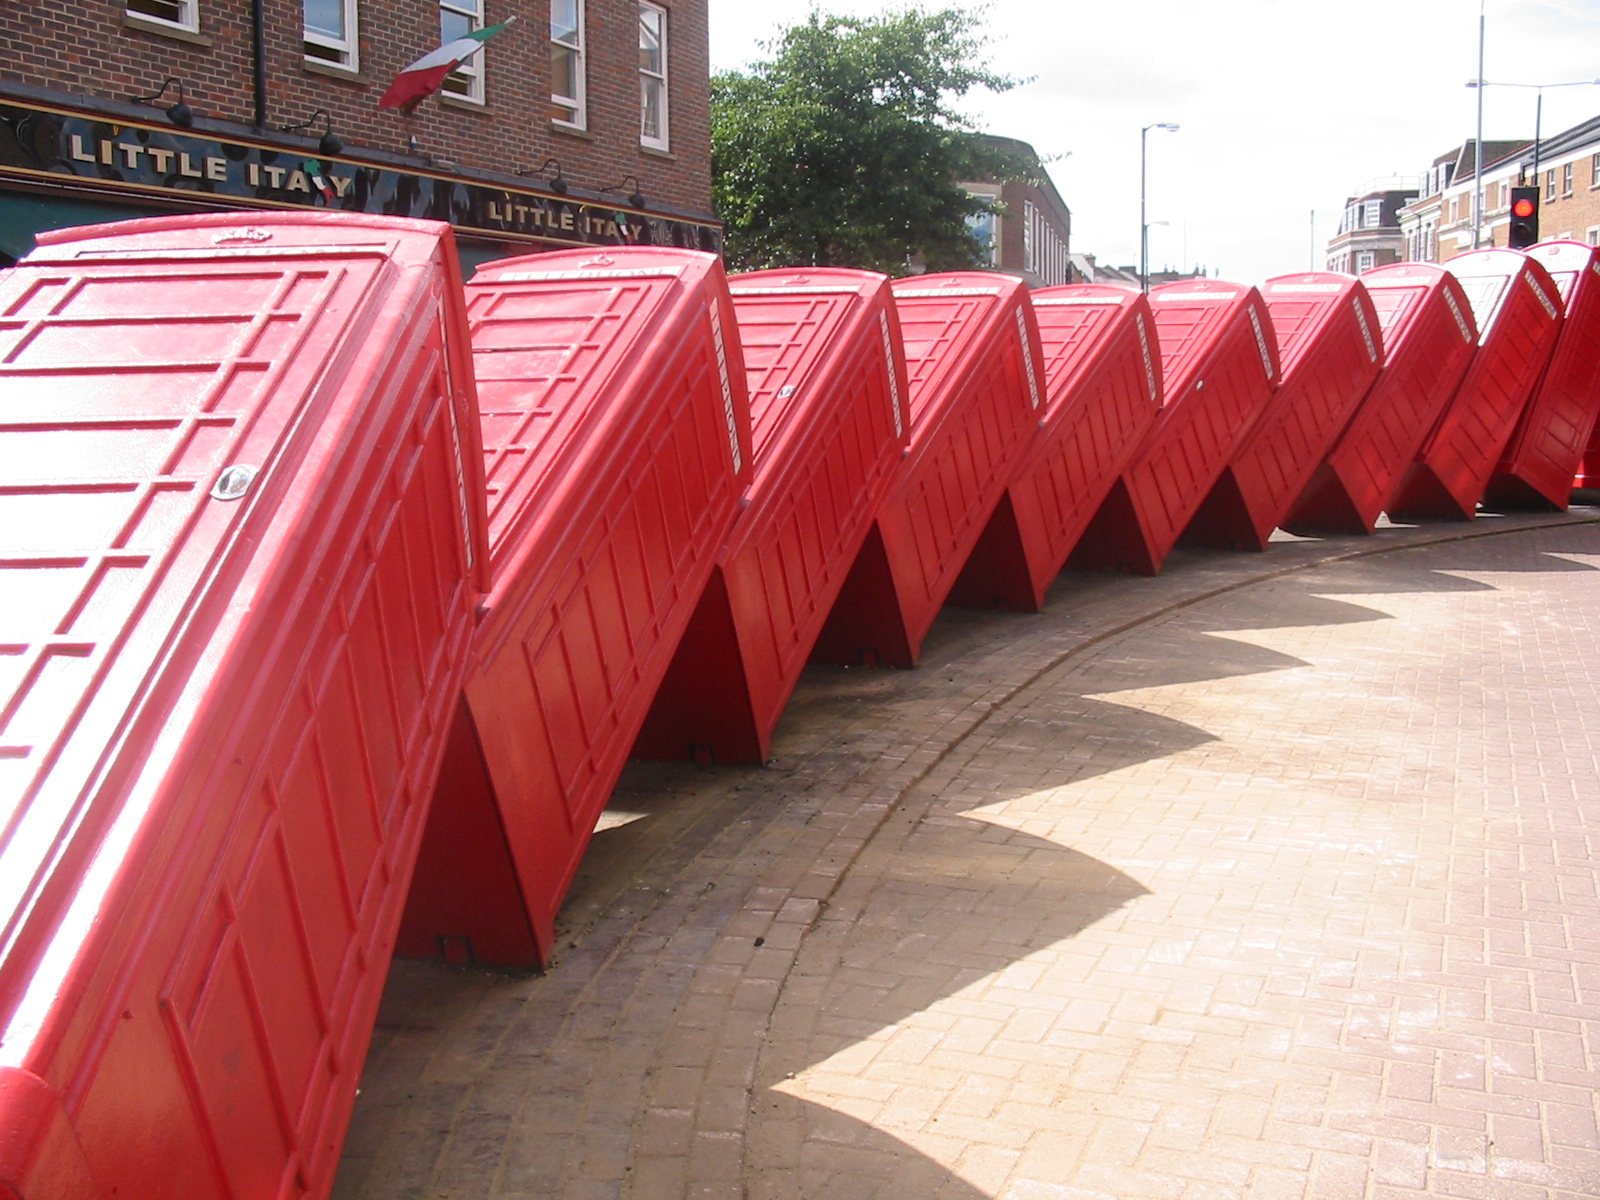 phoneboxes-phone-box-red-stacked-domino-in-London-Kingston-England-RF.jpg